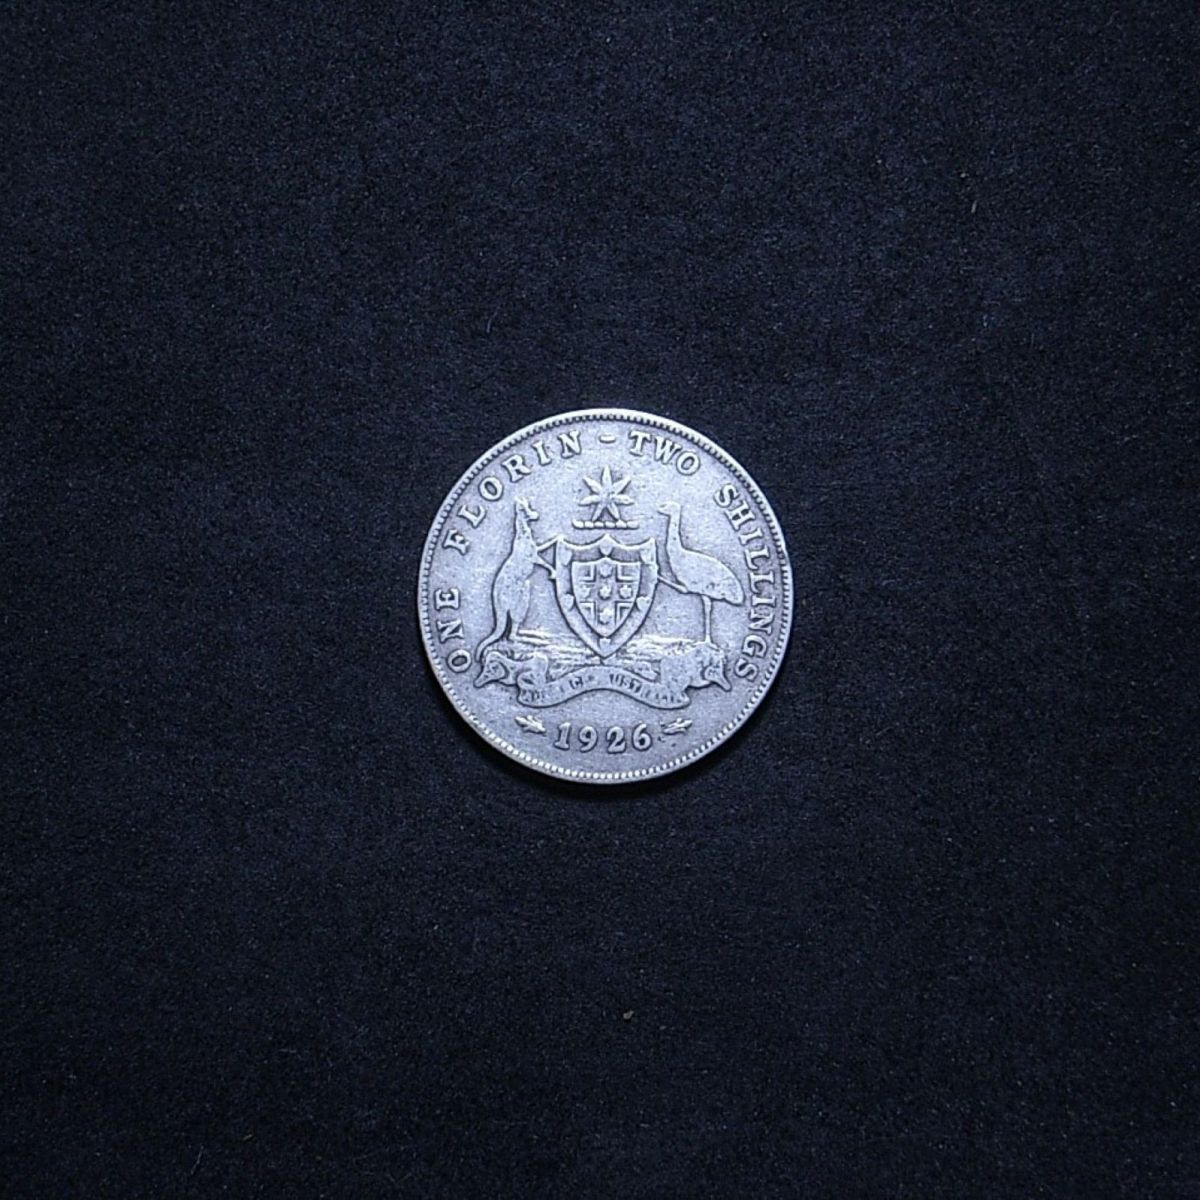 1926 florin reverse showing the coin is quite well circulated